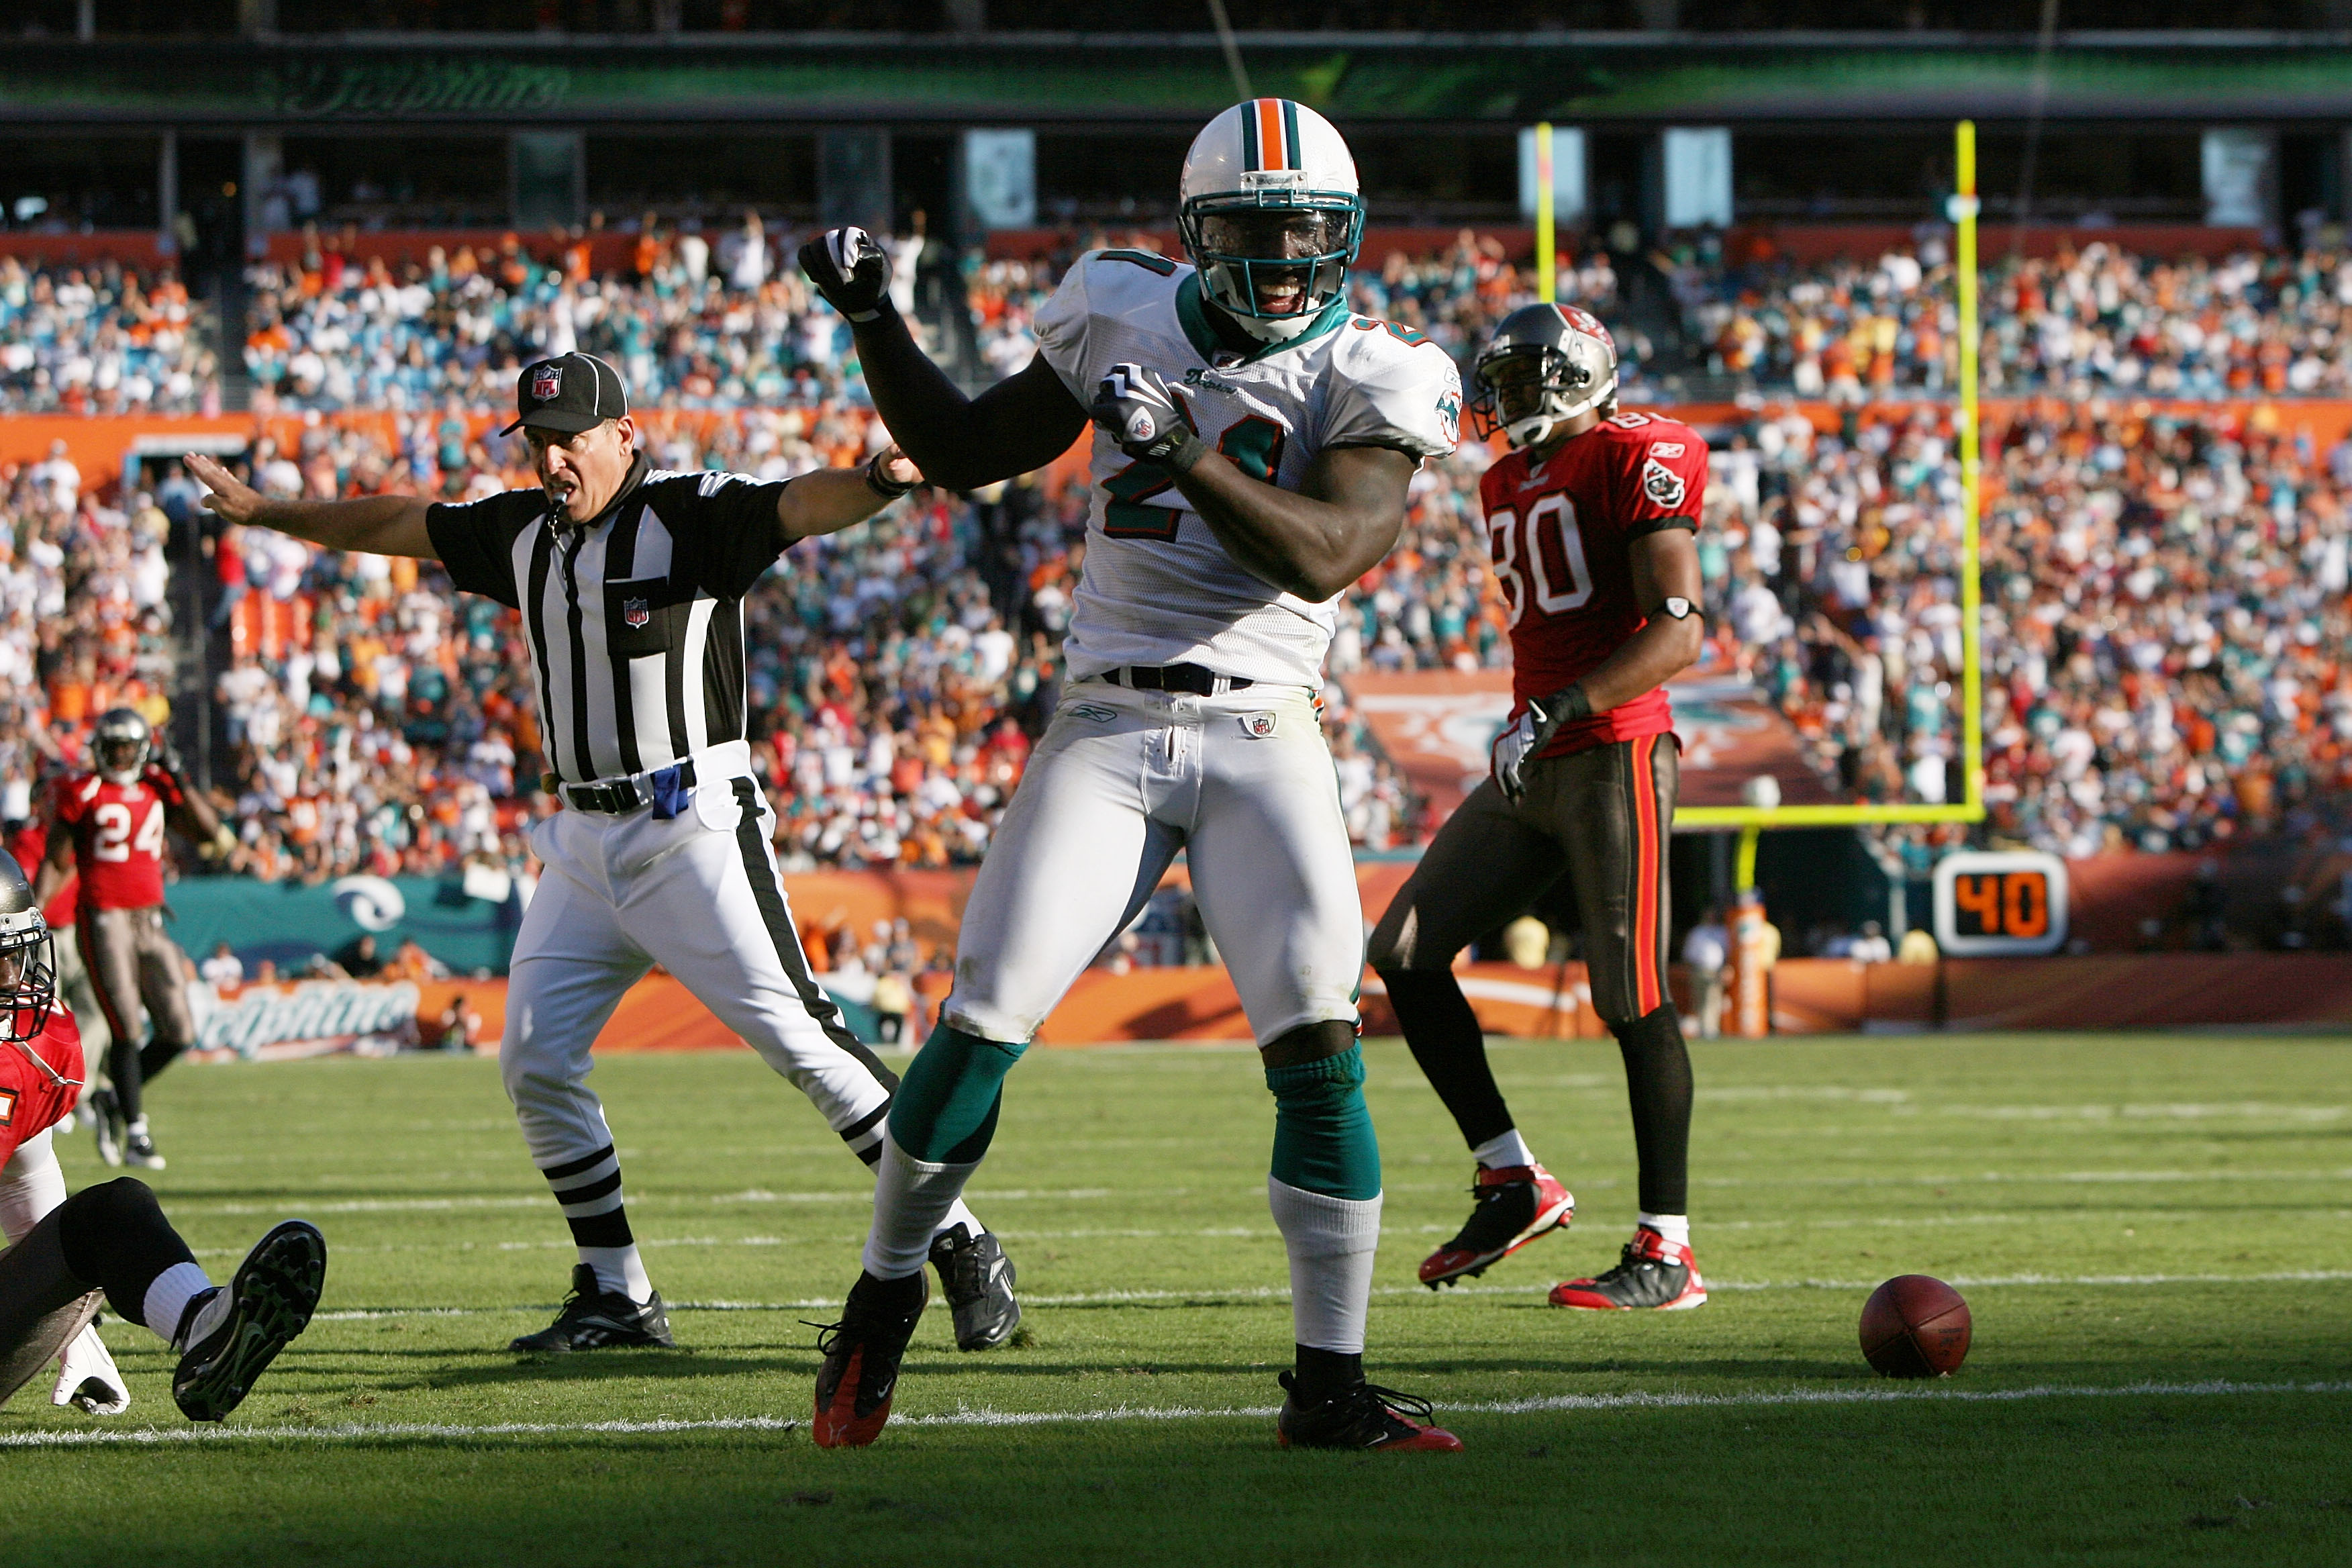 MIAMI GARDENS, FL - NOVEMBER 15:   Cornerback Vontae Davis #21 of the Miami Dolphins celebrates after breaking up a pass intended for wide receiver Maurice Stovall #85 of the Tampa Bay Buccaneers at Land Shark Stadium on November 15, 2009 in Miami Gardens